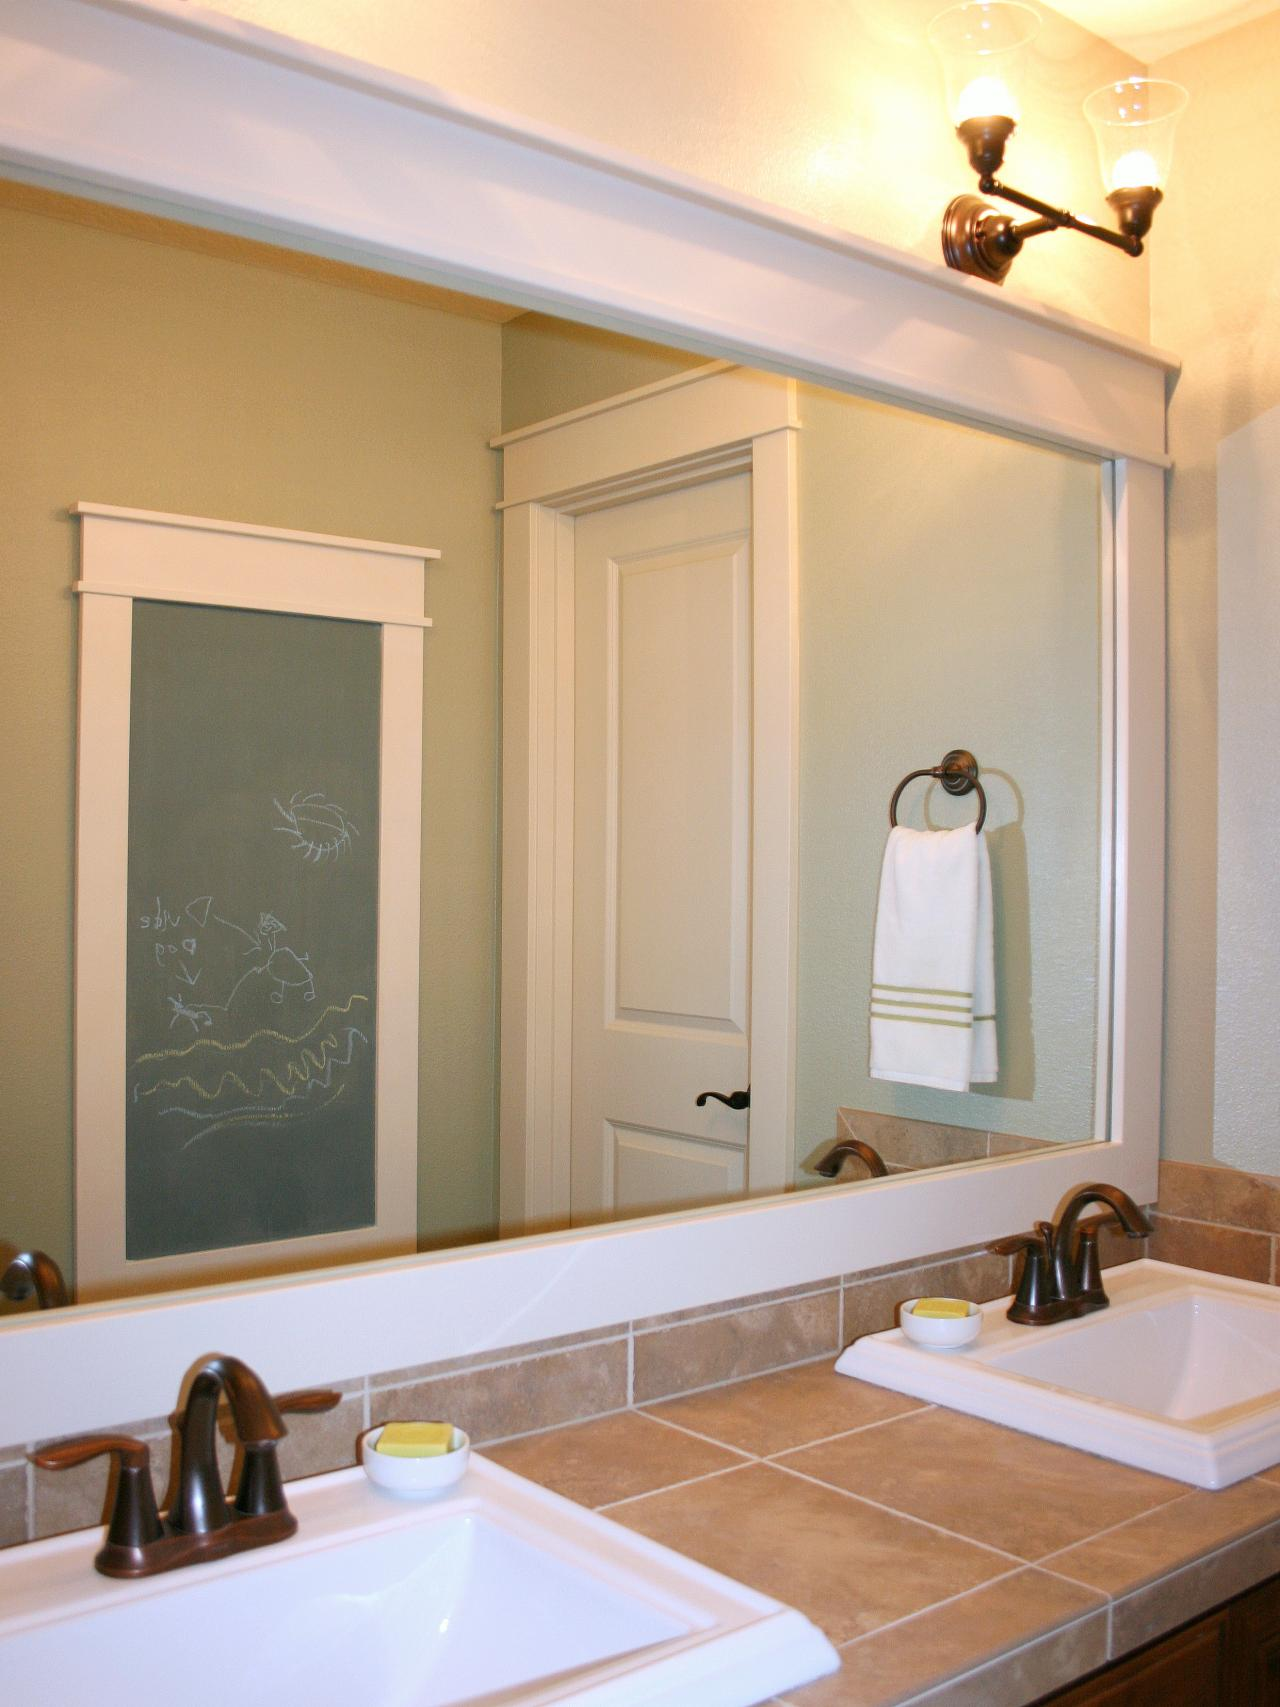 framing glue frame bathroom to lim framed wood makeover mirror mirrors